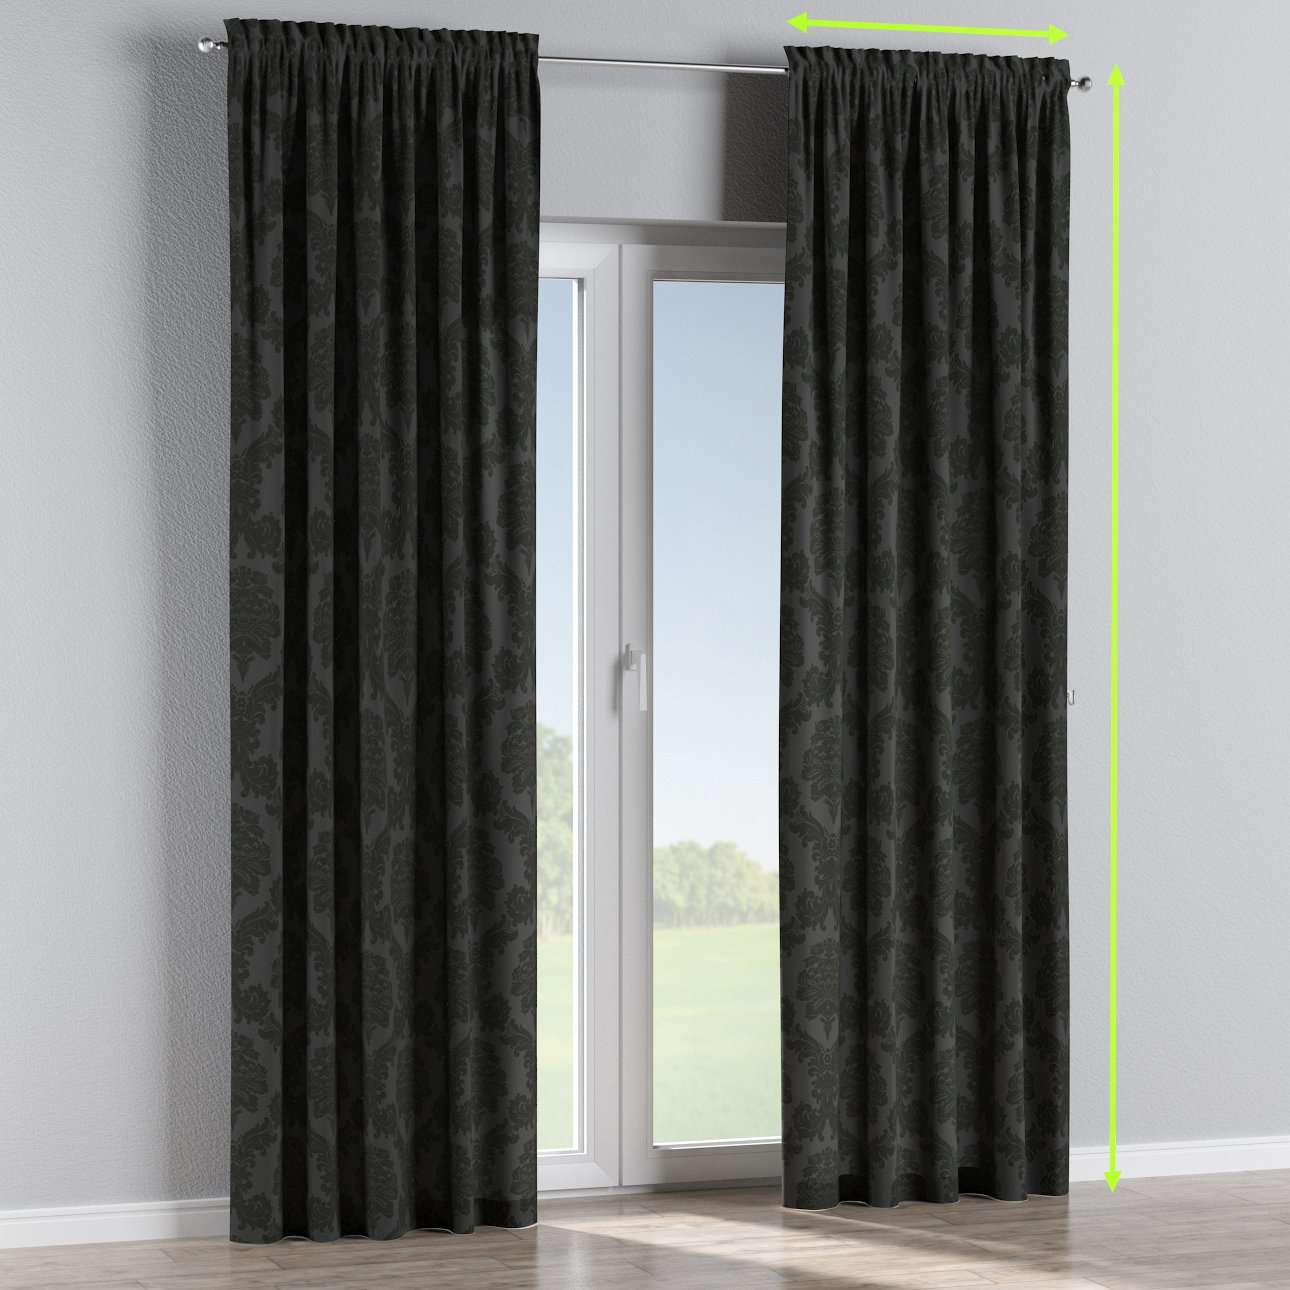 Slot and frill lined curtains in collection Damasco, fabric: 613-32